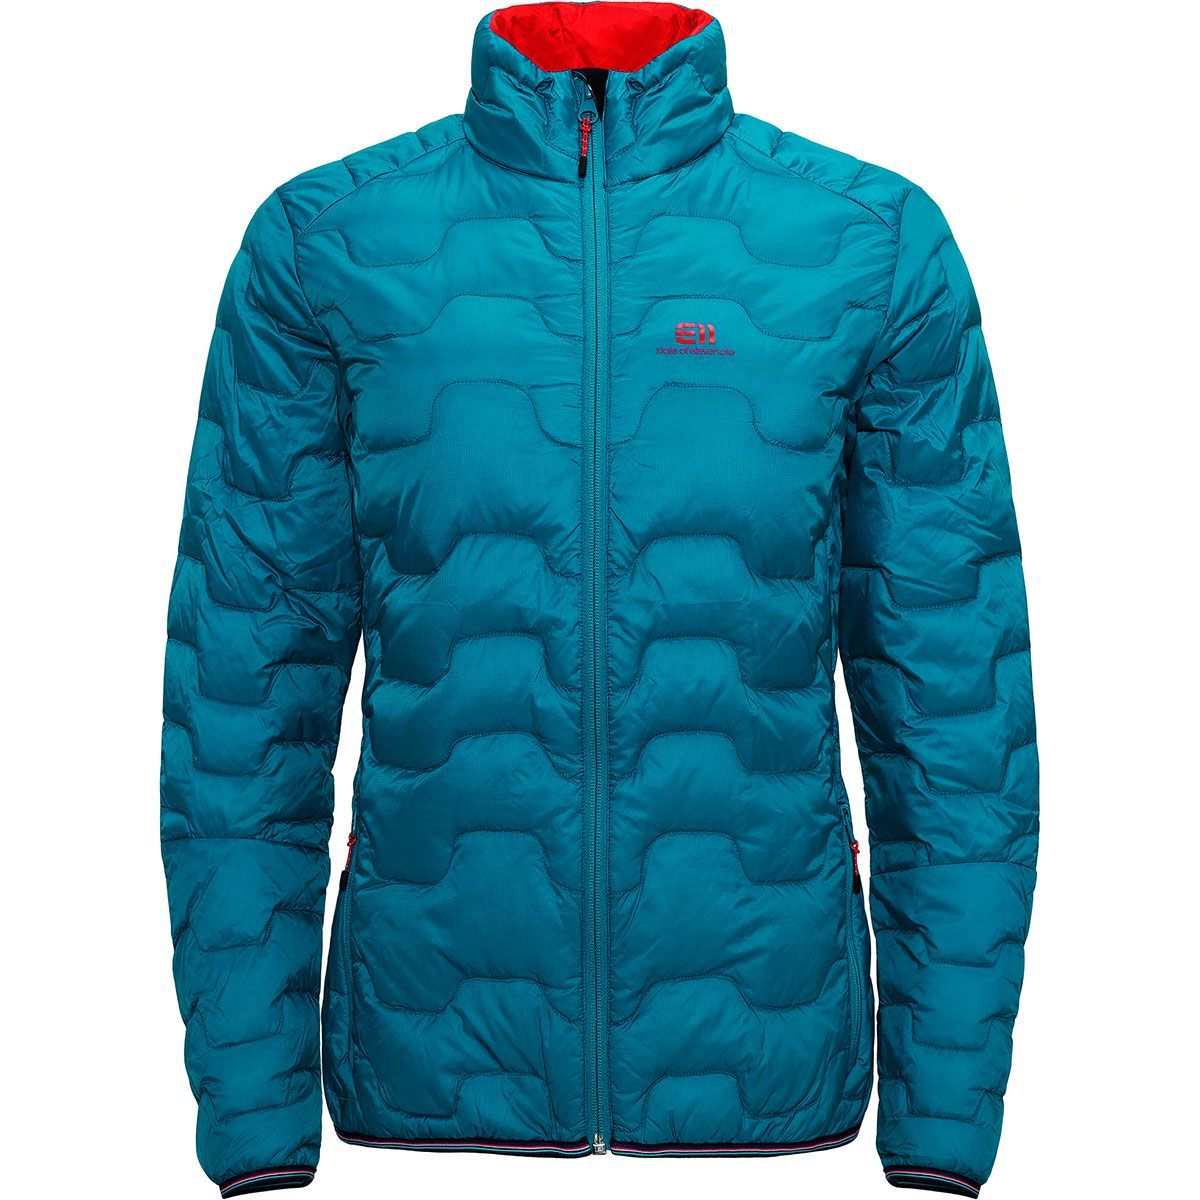 Elevenate Damen Motion Down Jacke (Größe XS, Blau) | Isolationsjacken > Damen